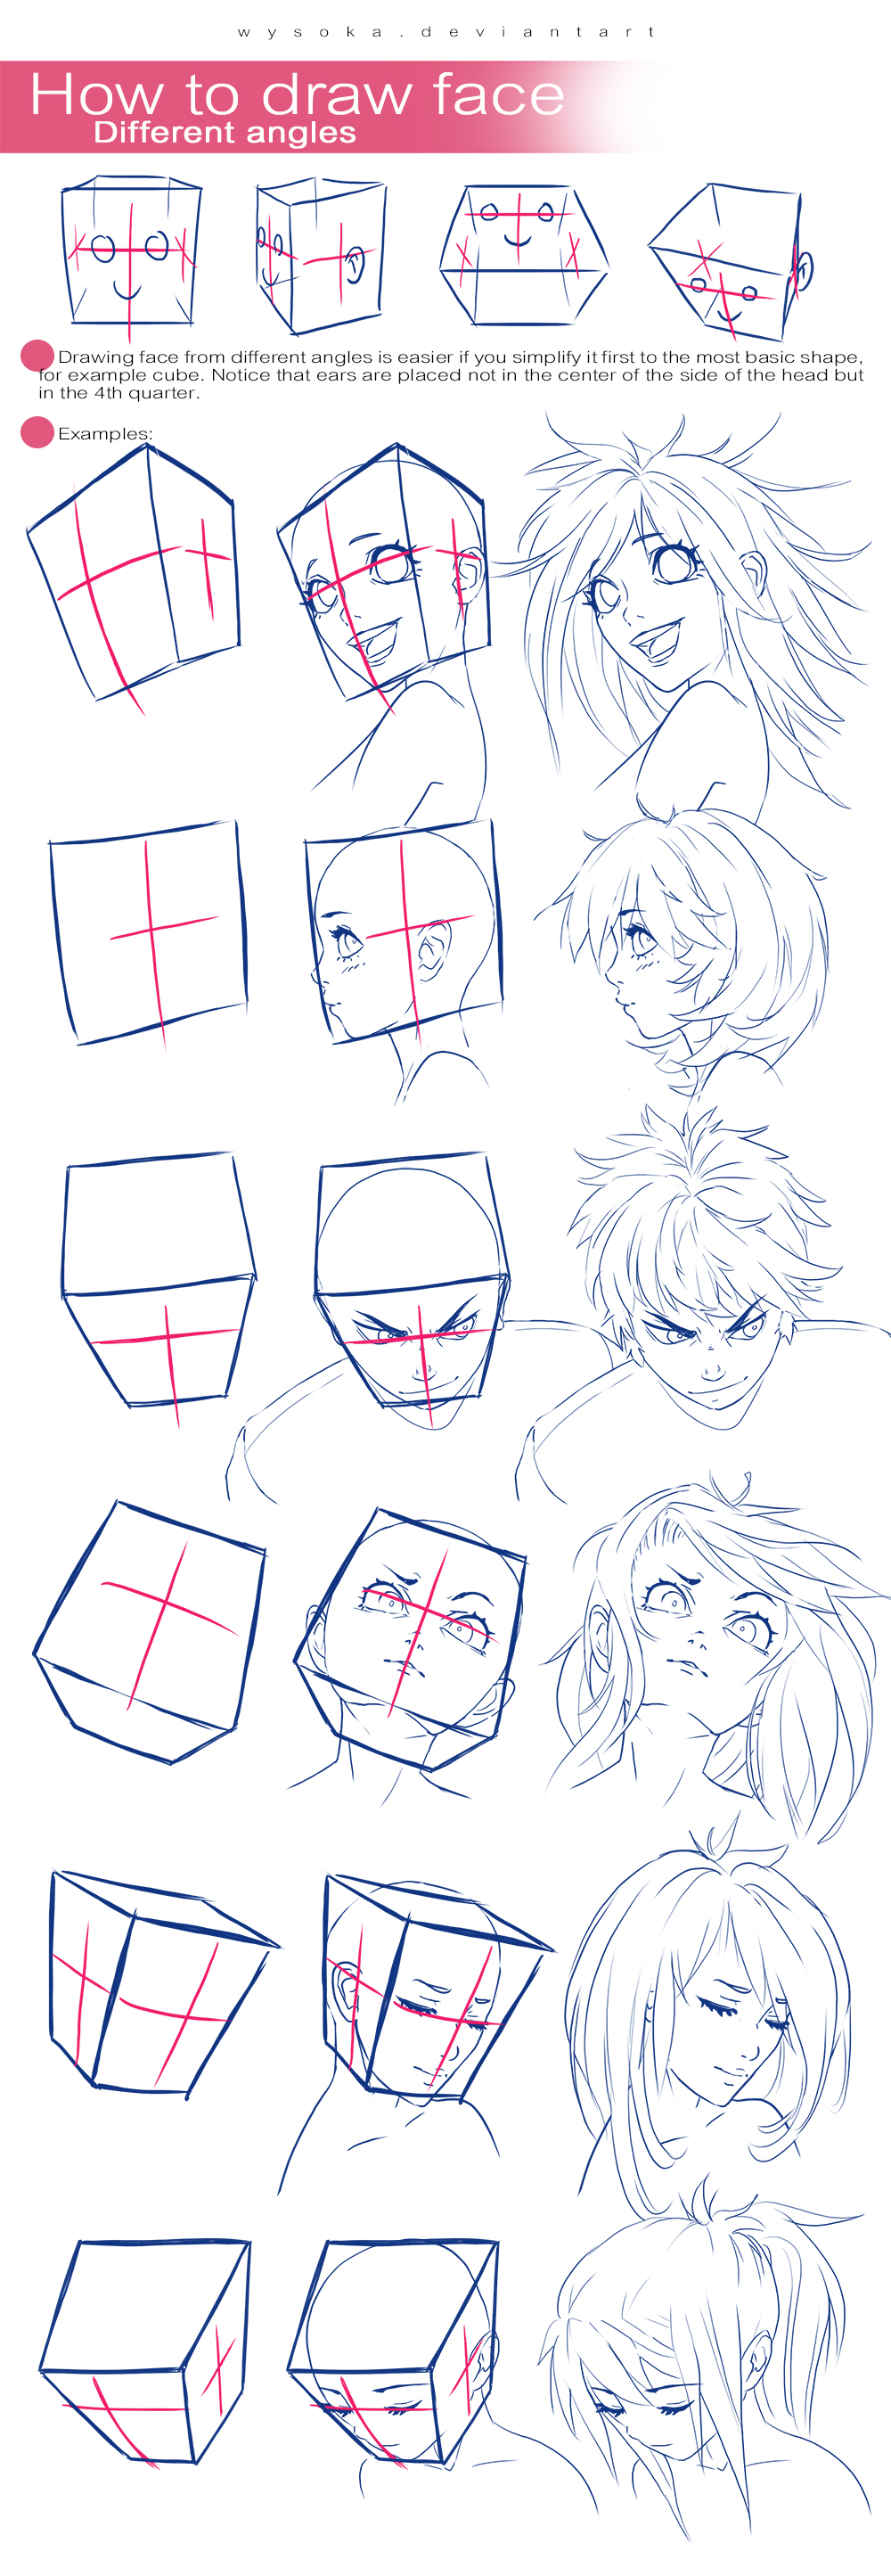 worksheet Drawing Angles worksheet drawing angles gabrieltoz worksheets for elementary head on all tutorials deviantart kate fox 2539 27 how to draw